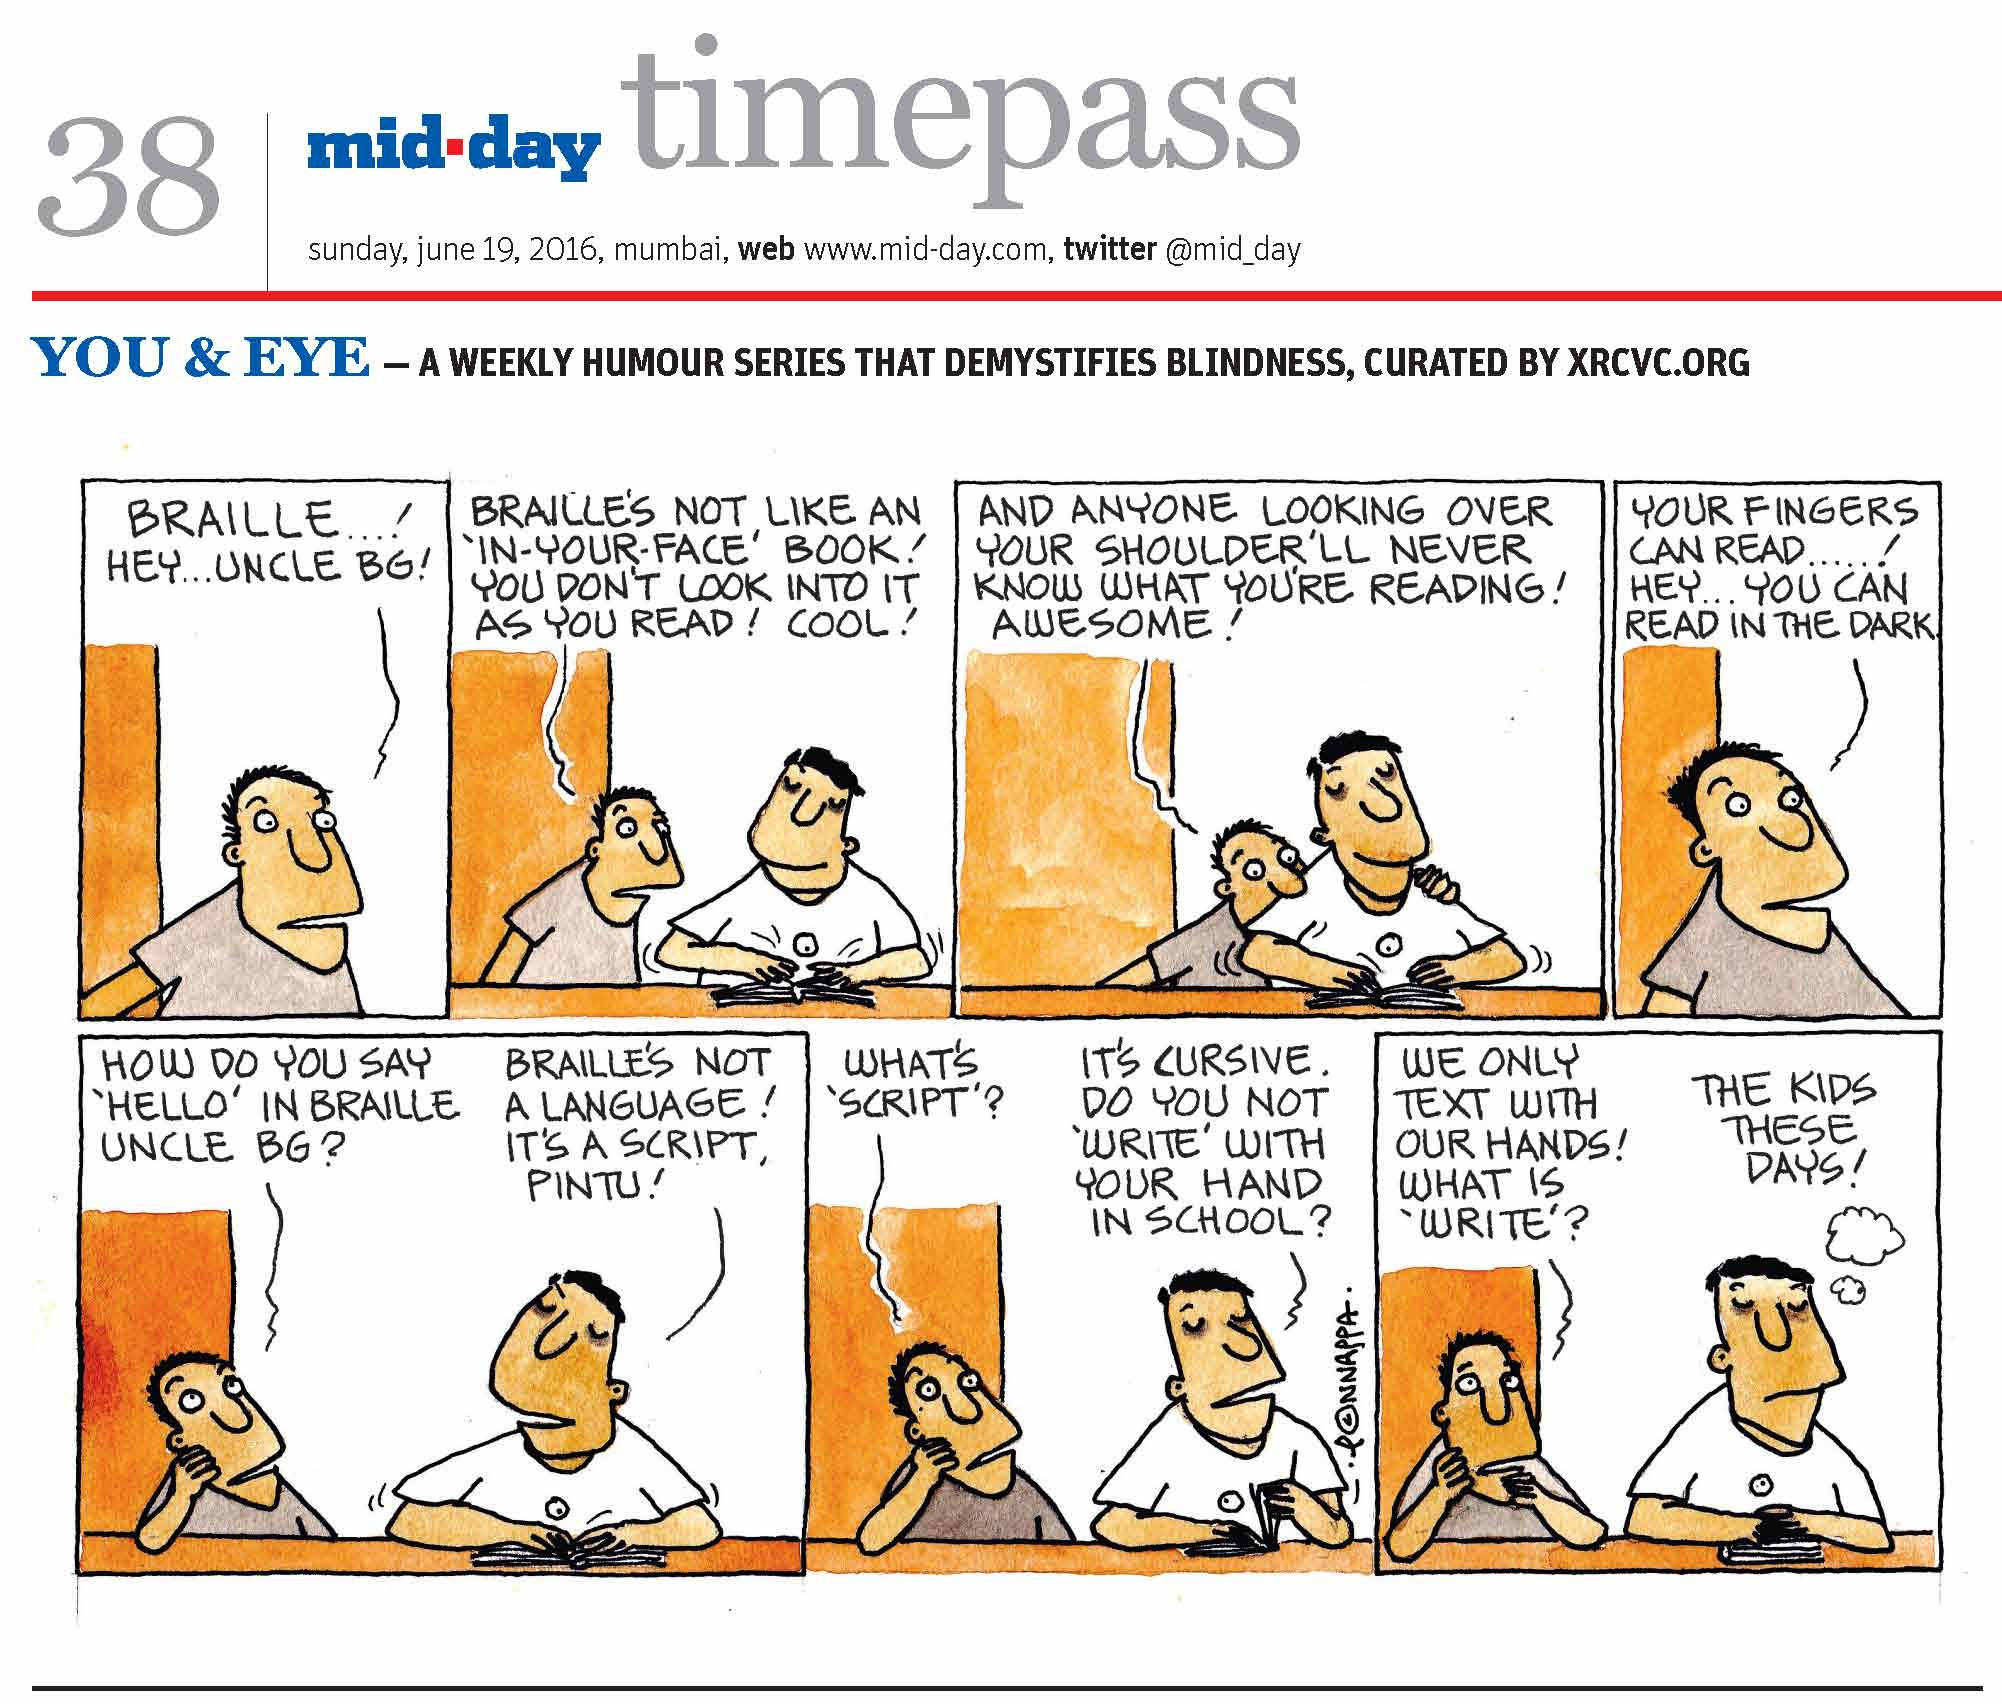 Page 38 mid-day timepass, sunday, june 19, 2016, mumbai, web: www.mid-day.com, twitter @mid_day, YOU & EYE – A WEEKLY HUMOUR SERIES THAT DEMYSTIFIES BLINDNESS, CURATED BY XRCVC.ORG Image description: A cartoon strip with 7 frames… Frame 1: (A sighted boy speaking) The sighted boy: Braille…! Hey… Uncle BG! Frame 2: (The sighted nephew – Pintu – standing to the right of the visually impaired man – BG – as he sits at a table reading from a book) Pintu: Braille's not like an 'in-your-face' book! You don't look into it as you read! Cool! Frame 3: (Pintu peeping from behind BG's shoulder while BG is seated at a table reading a book) Pintu: And anyone looking over your shoulder'll never know what you're reading! Awesome! Frame 4: (Pintu speaking) Pintu: Your fingers can read…! Hey… you can read in the dark! Frame 5: (Pintu sitting to the right of BG wondering) Pintu: How do you say 'Hello' in Braille, Uncle BG? BG: Braille's not a language! It's a script, Pintu! Frame 6: (Pintu sitting to the right of BG wondering) Pintu: What's 'script'? BG: It's cursive. Do you not 'write' with your hand in school? Frame 7: (Pintu seemingly confused as he sits to the right of BG) Pintu: We only text with our hands! What is 'write'? BG: The kids these days! (Signed Ponnappa, in Frame 6)